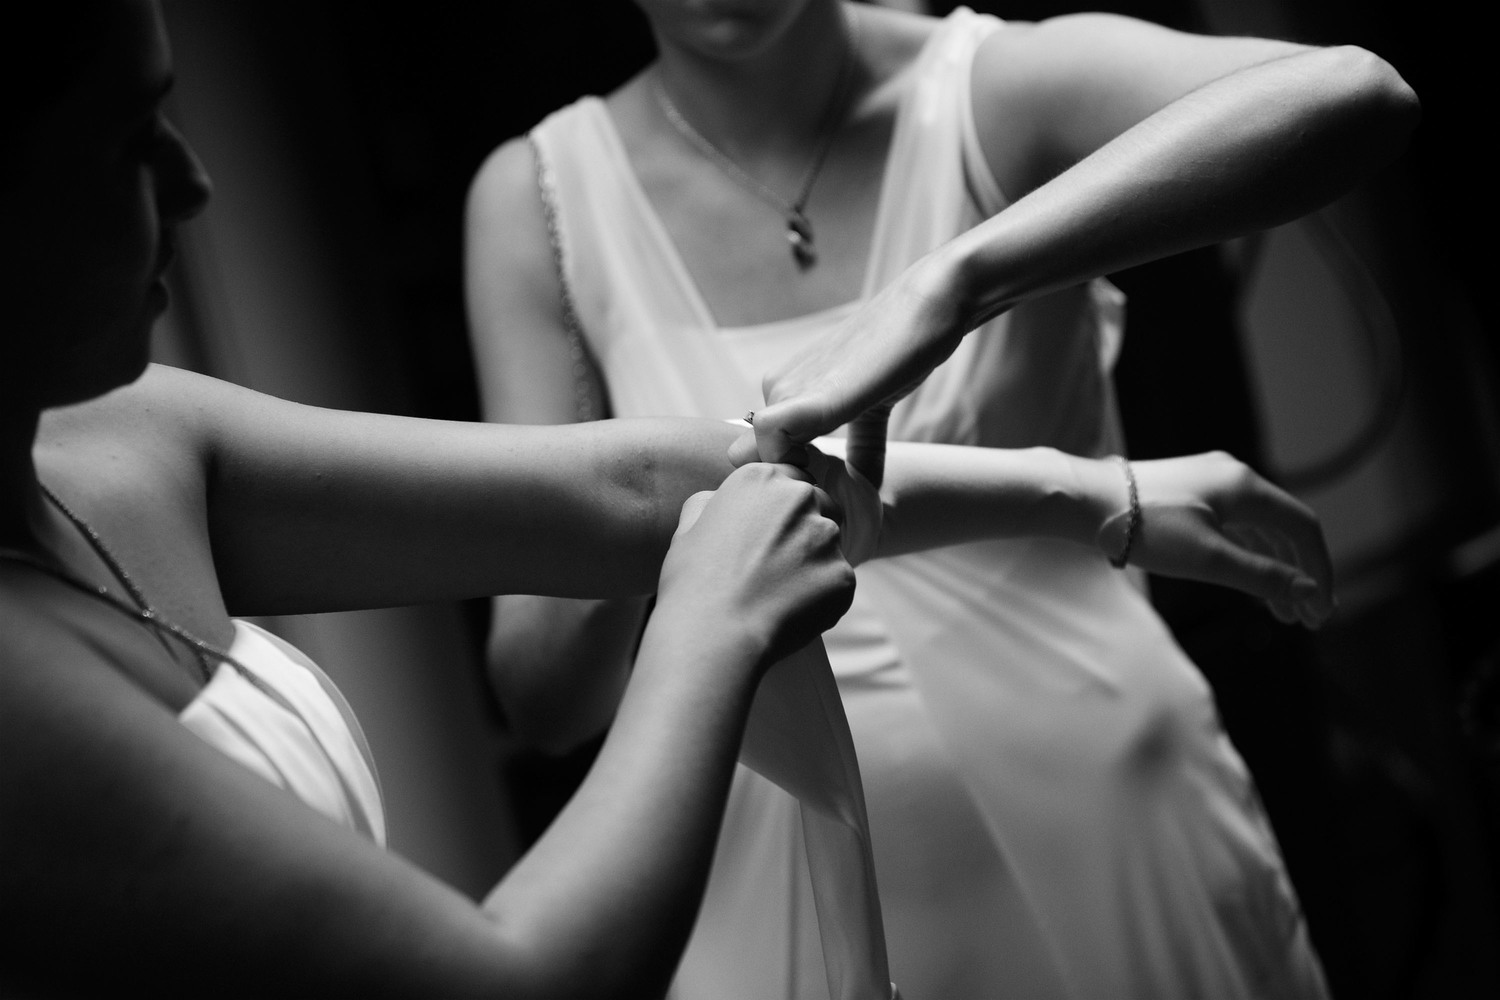 Candid black and white photography debutante ball